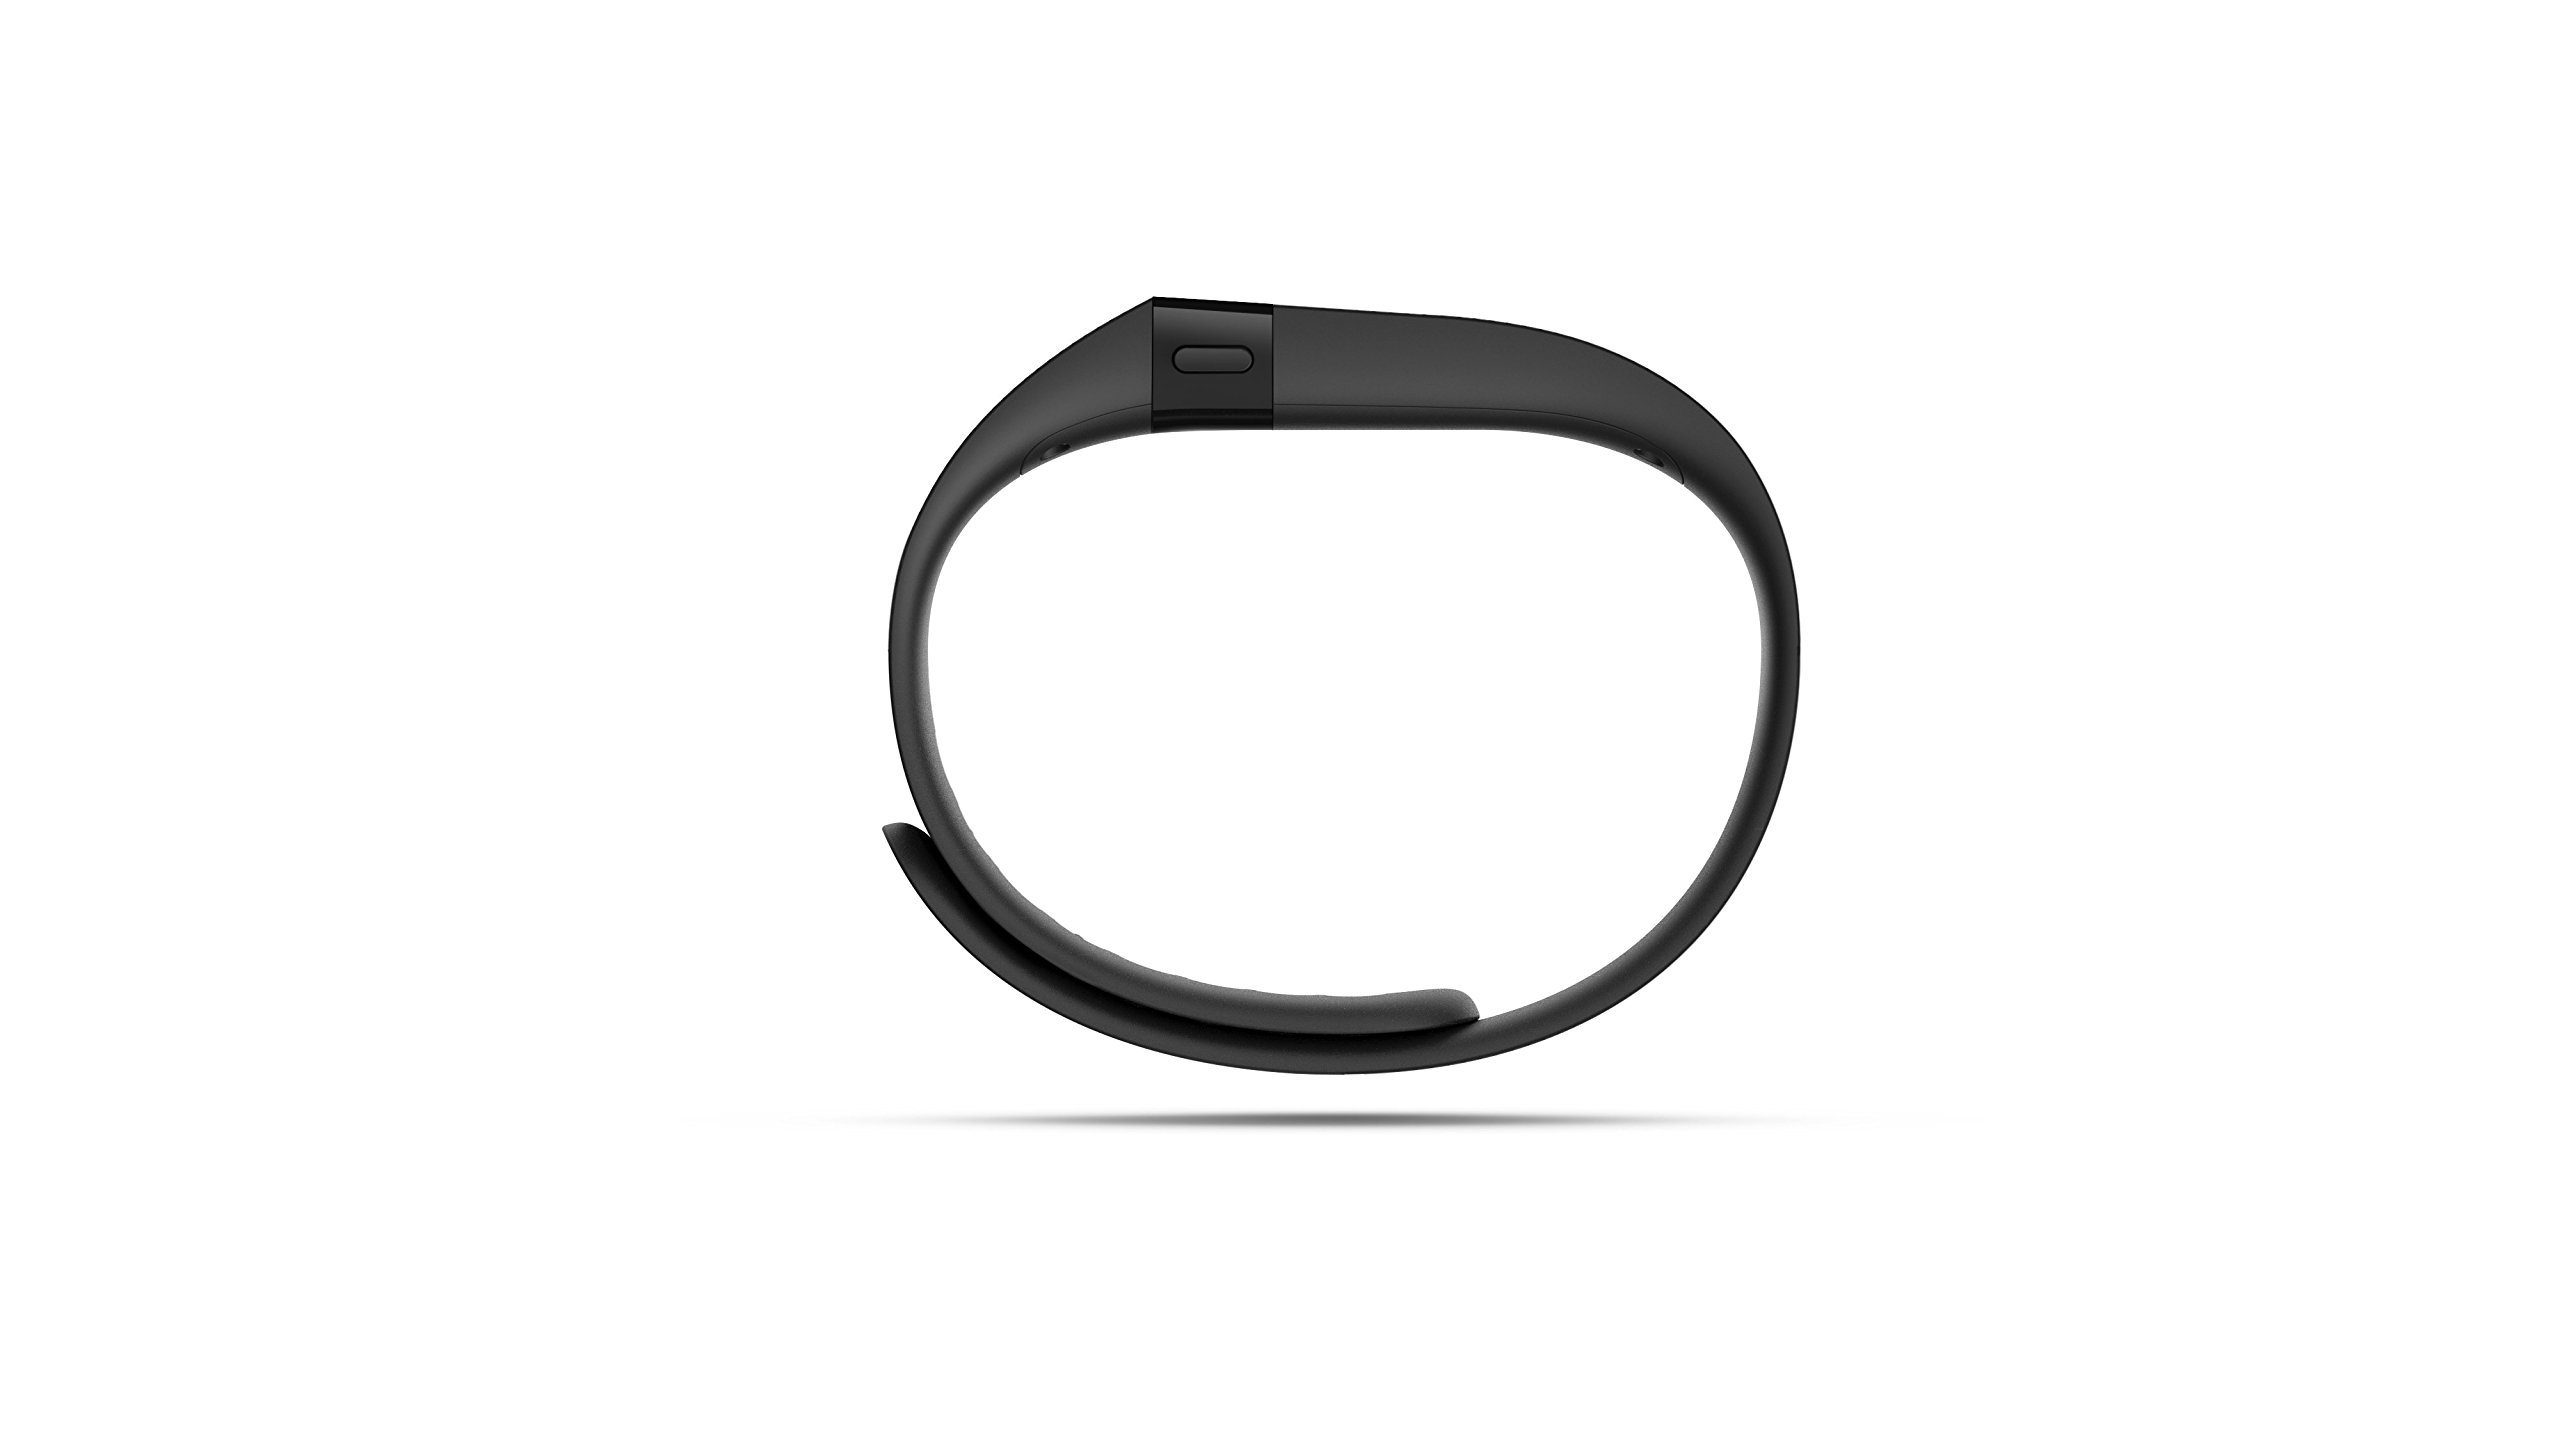 Fitbit Charge Wireless Activity Wristband, Black, Large by Fitbit (Image #2)